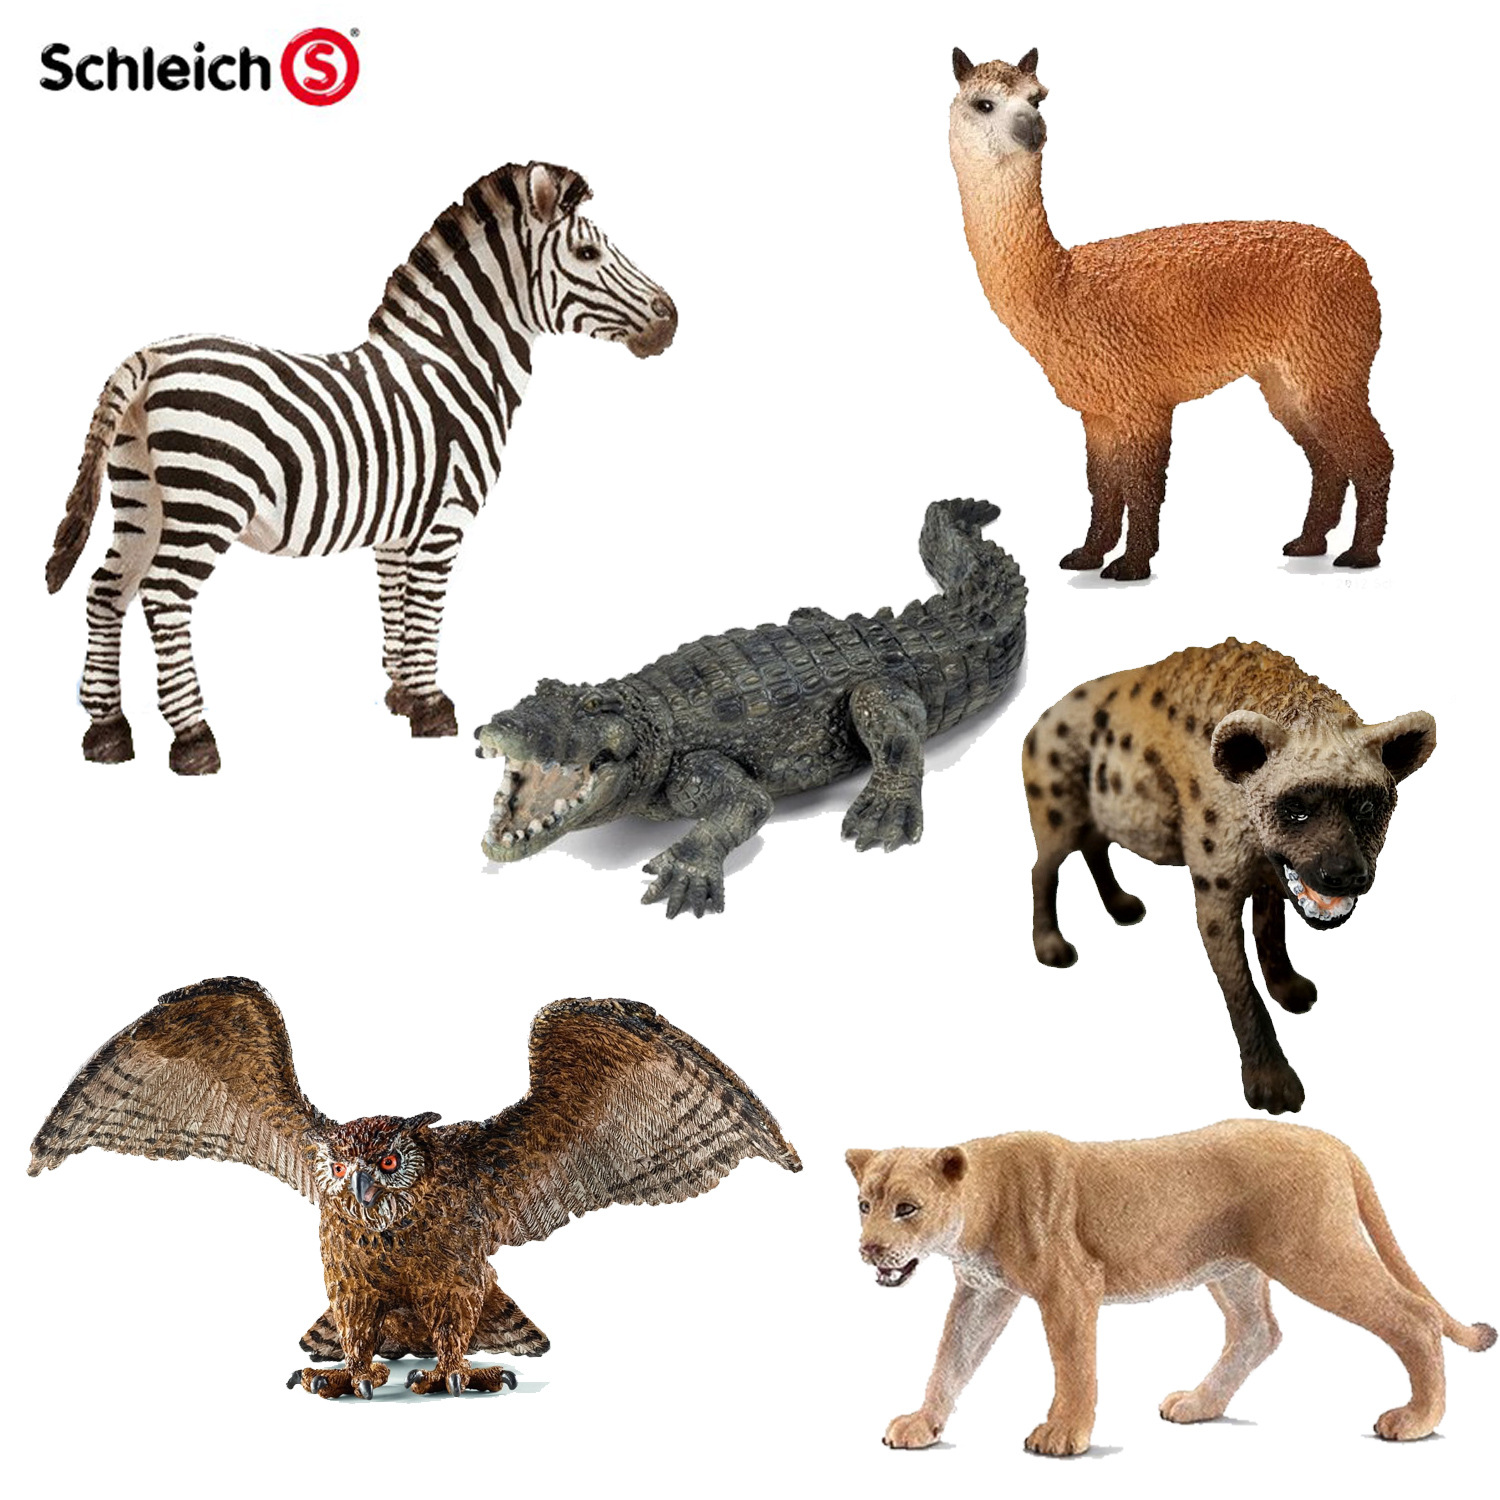 Genuine Product Germany Schleich S Schleich Animal Model Toy Hedgehog Model Wild Animal Multi--Selectable